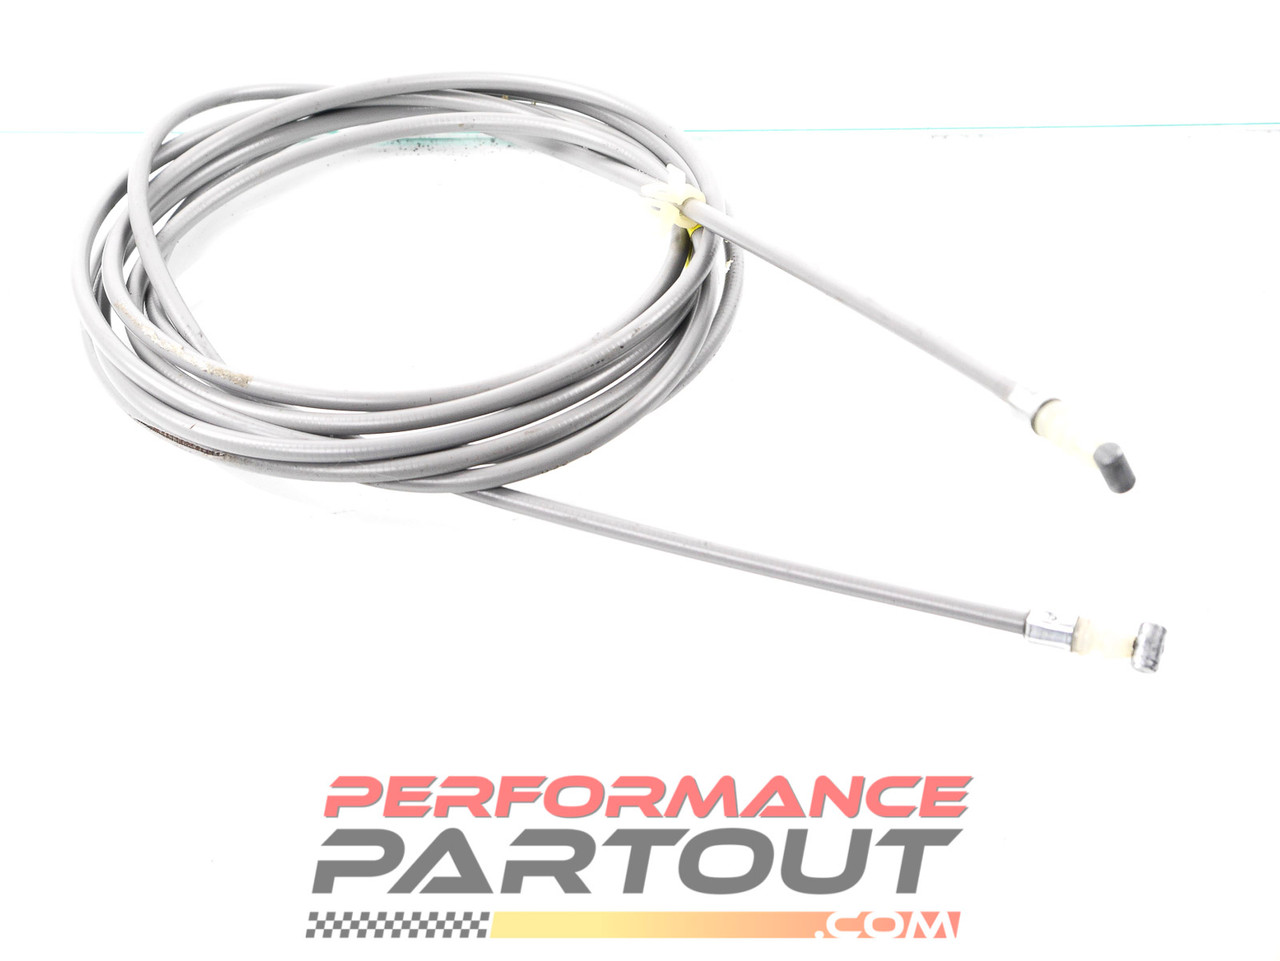 Hatch release cable 2G DSM Grey